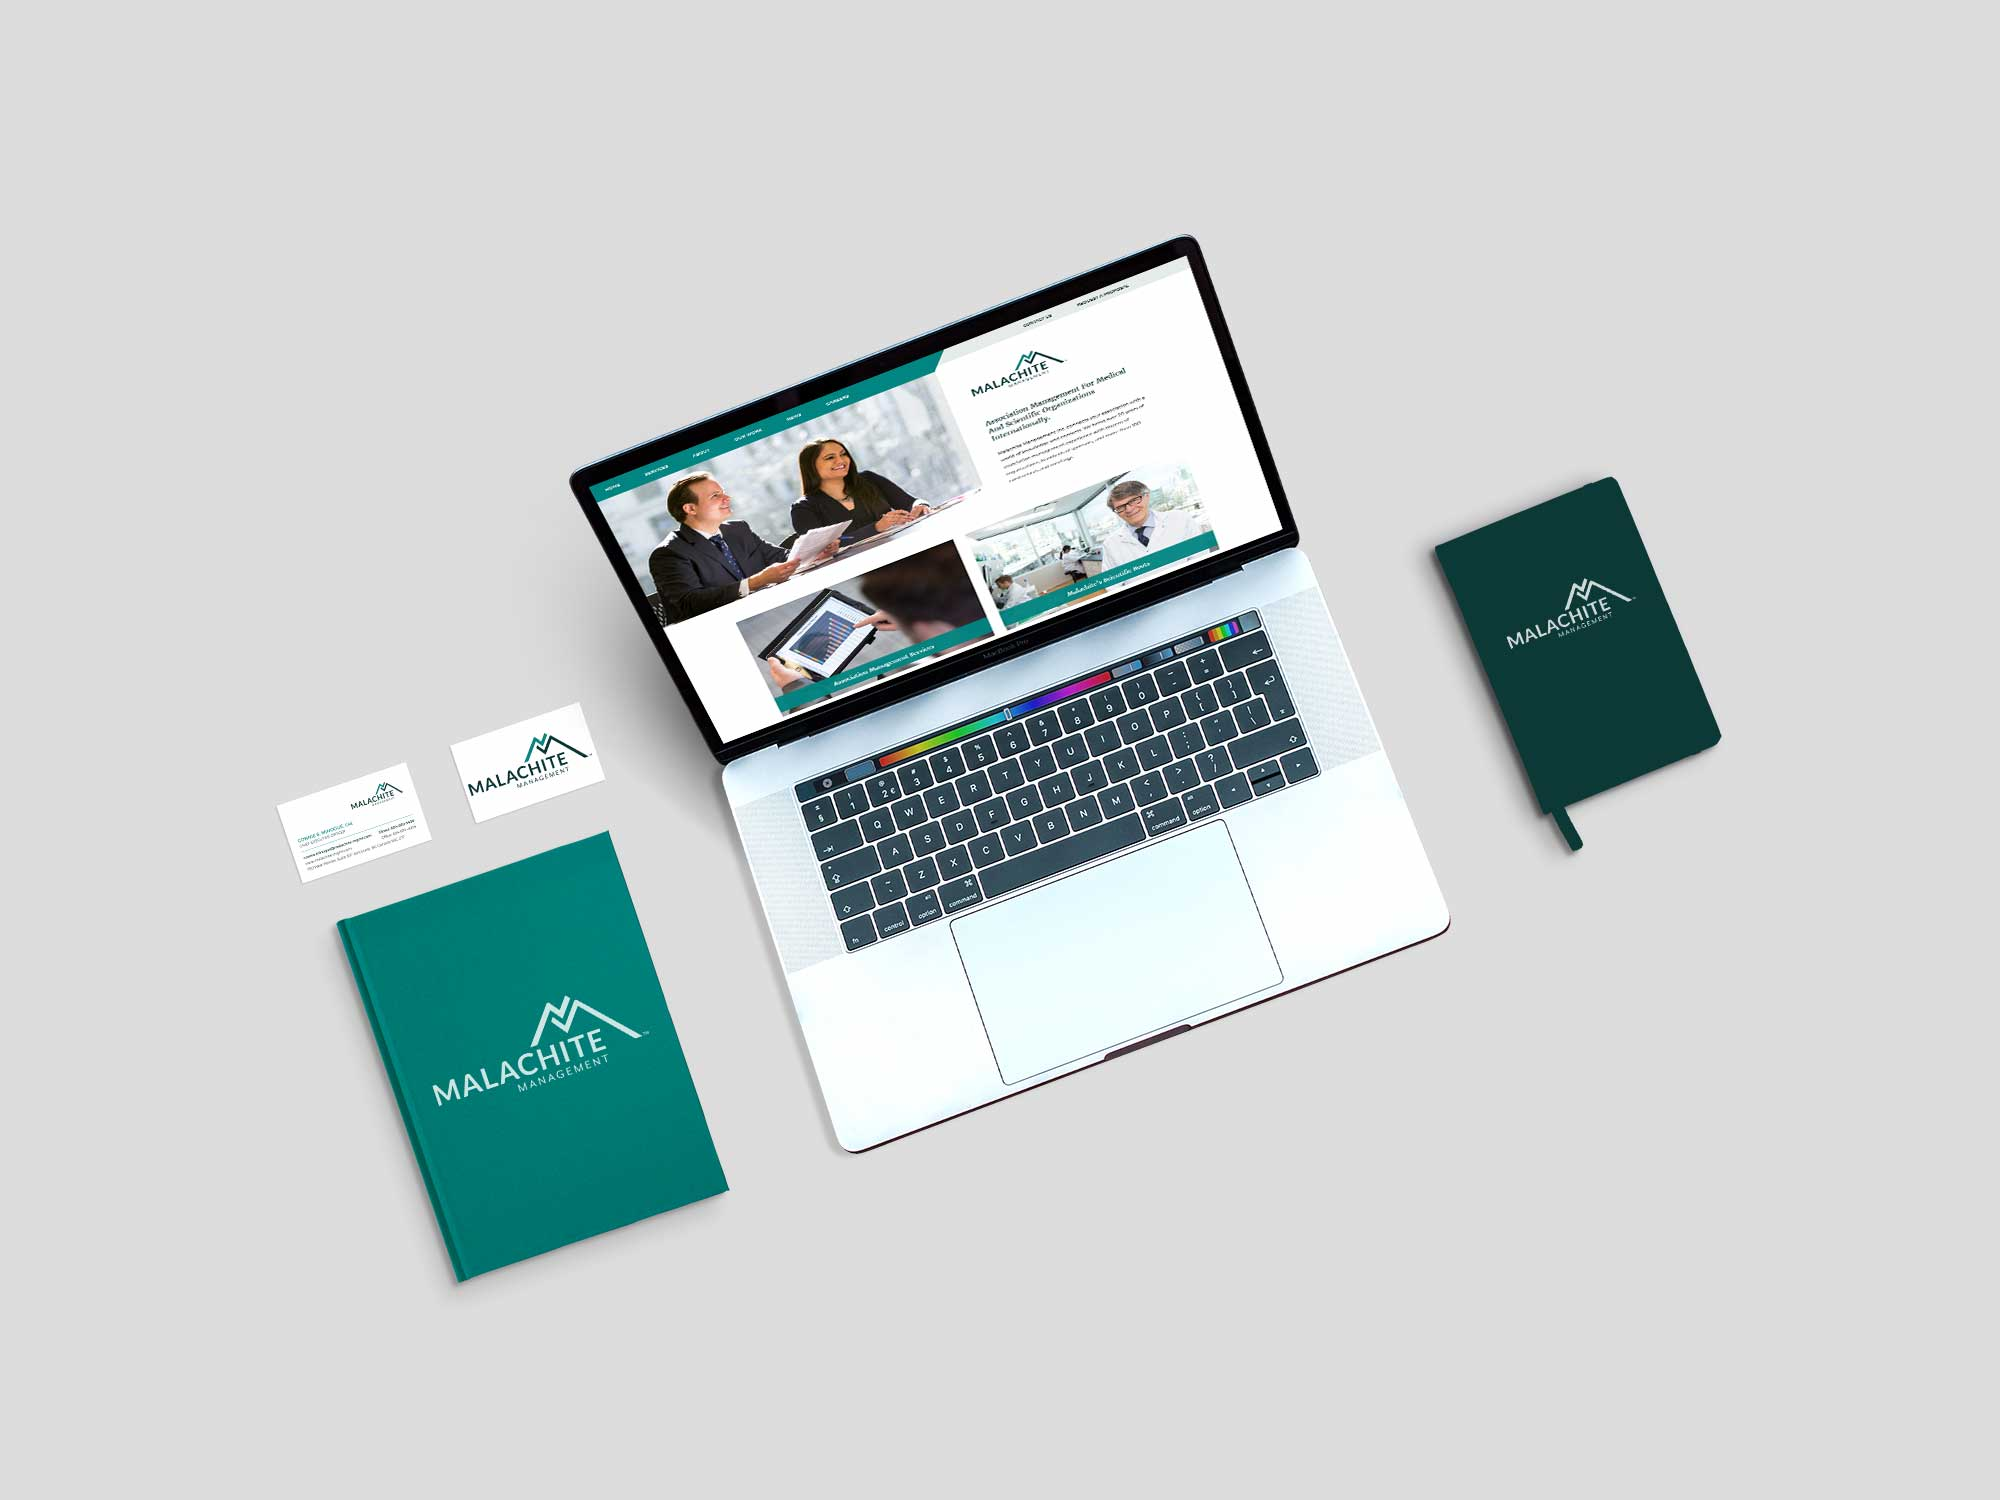 Branding business cards and website design